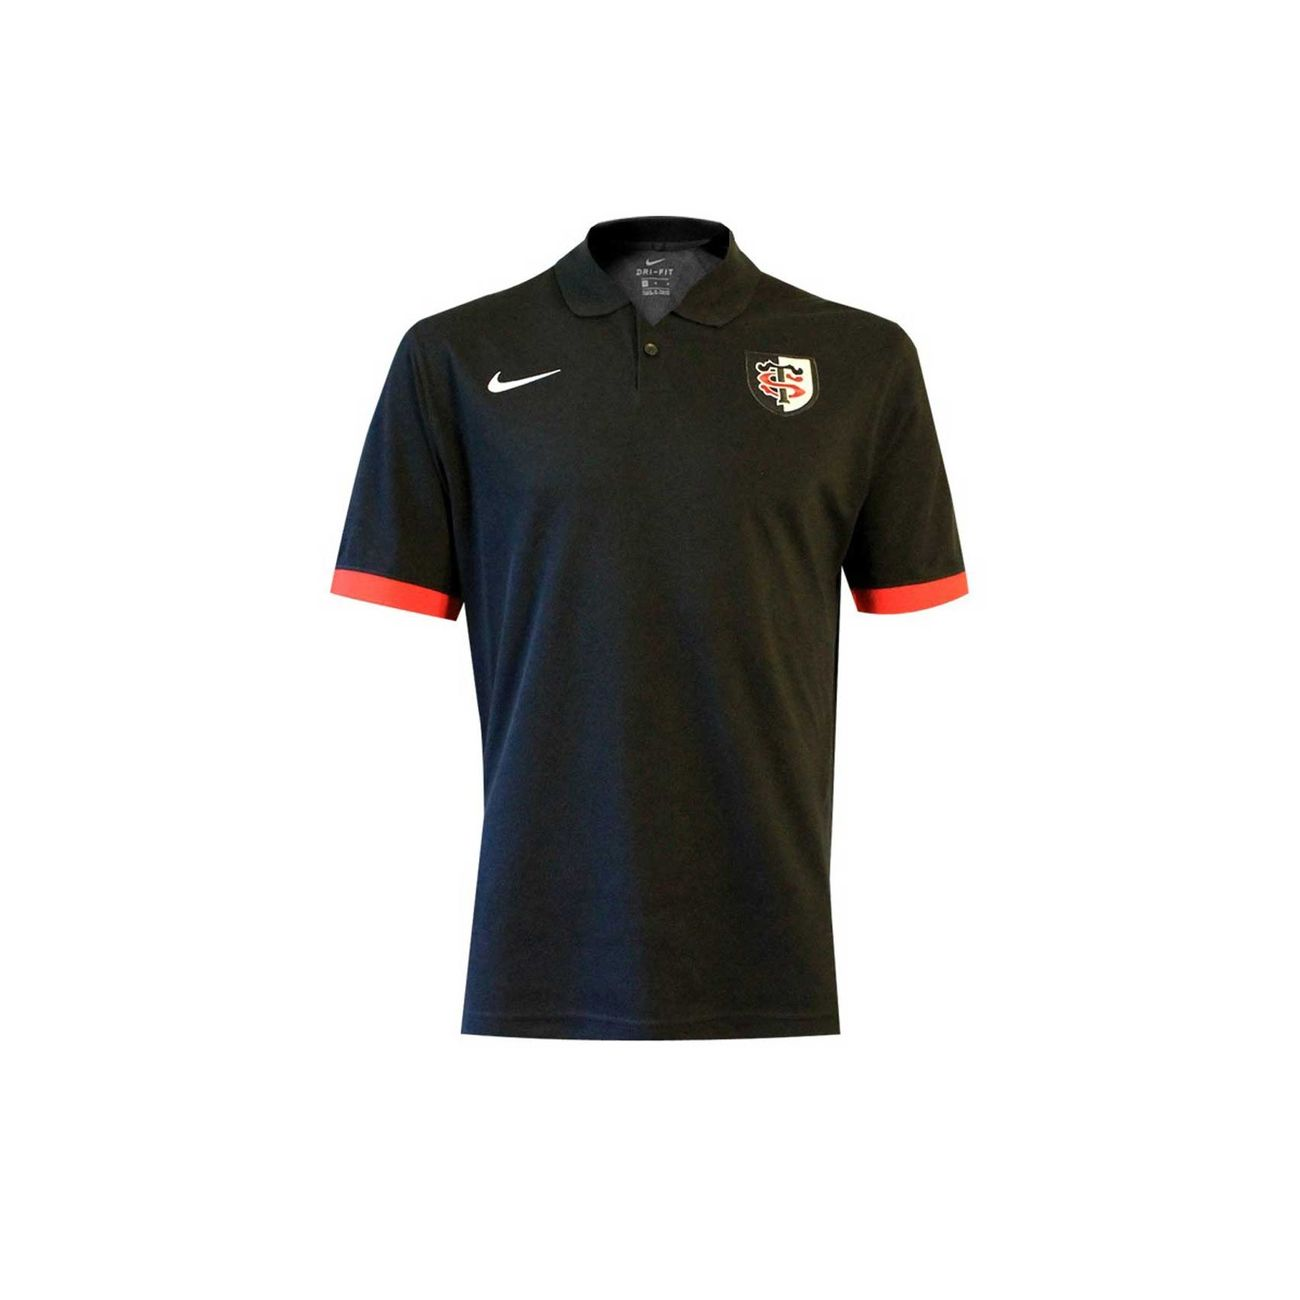 84f4c193c728 Polo rugby Stade Toulousain homme - Nike – achat et prix pas cher ...